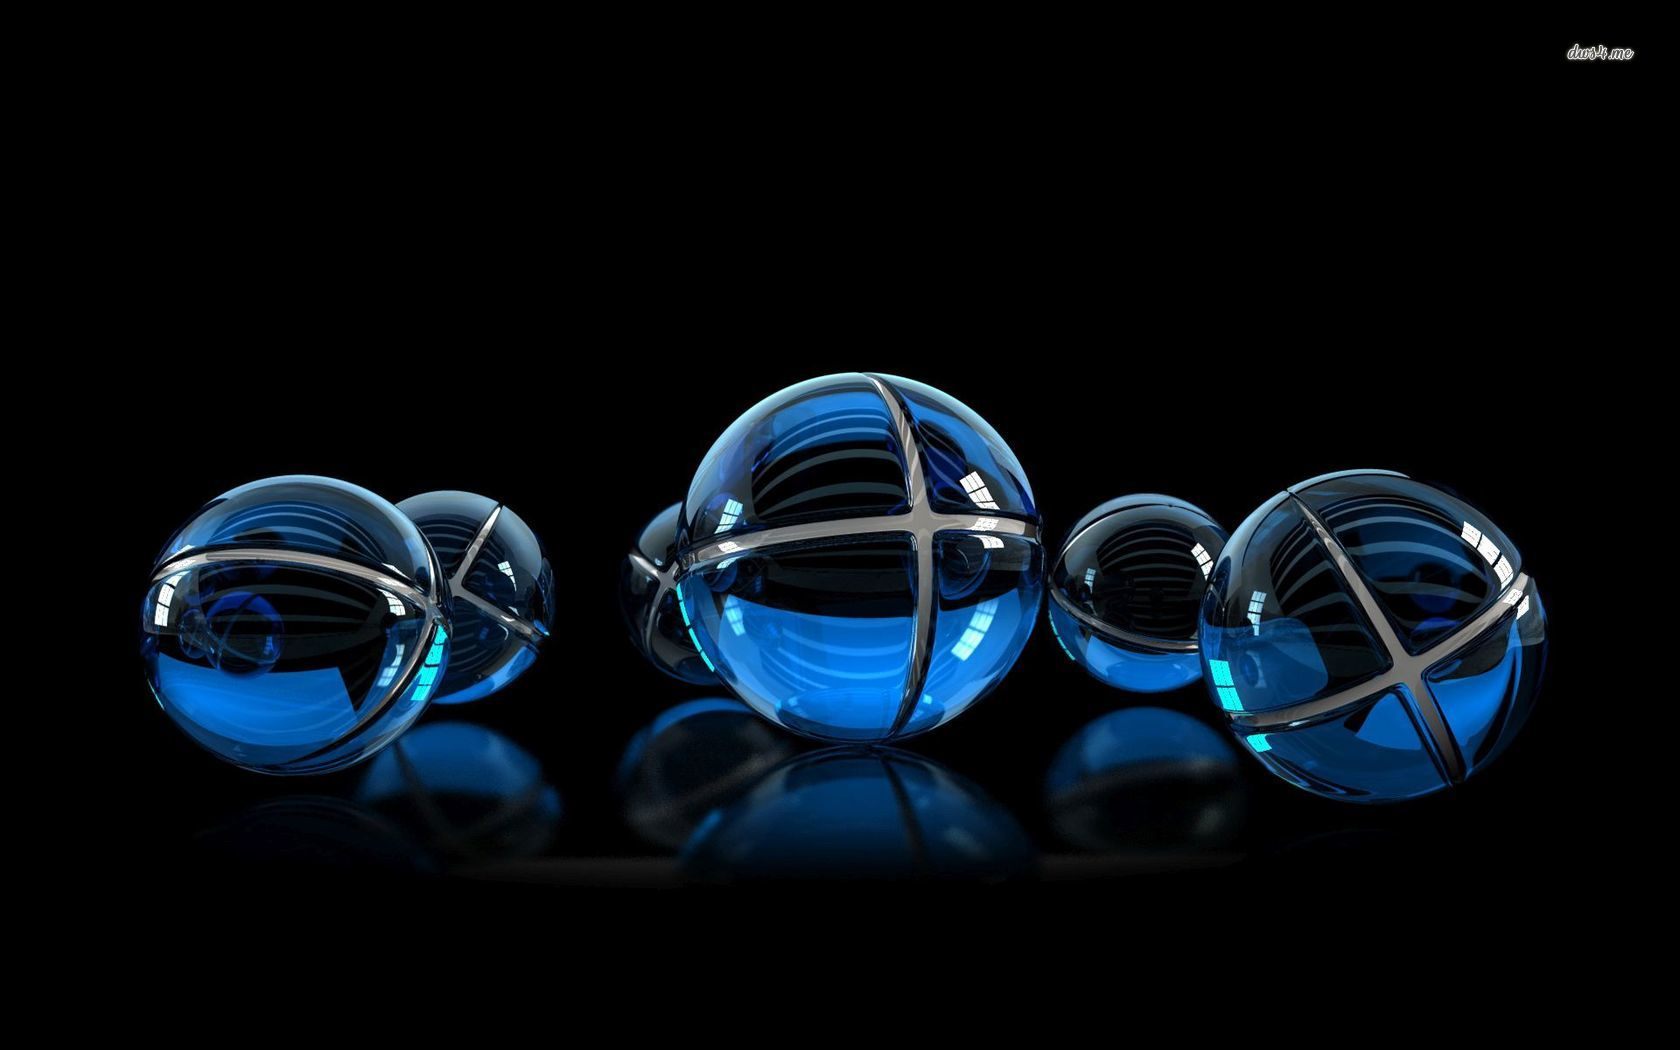 blue light balls 3d wallpaper